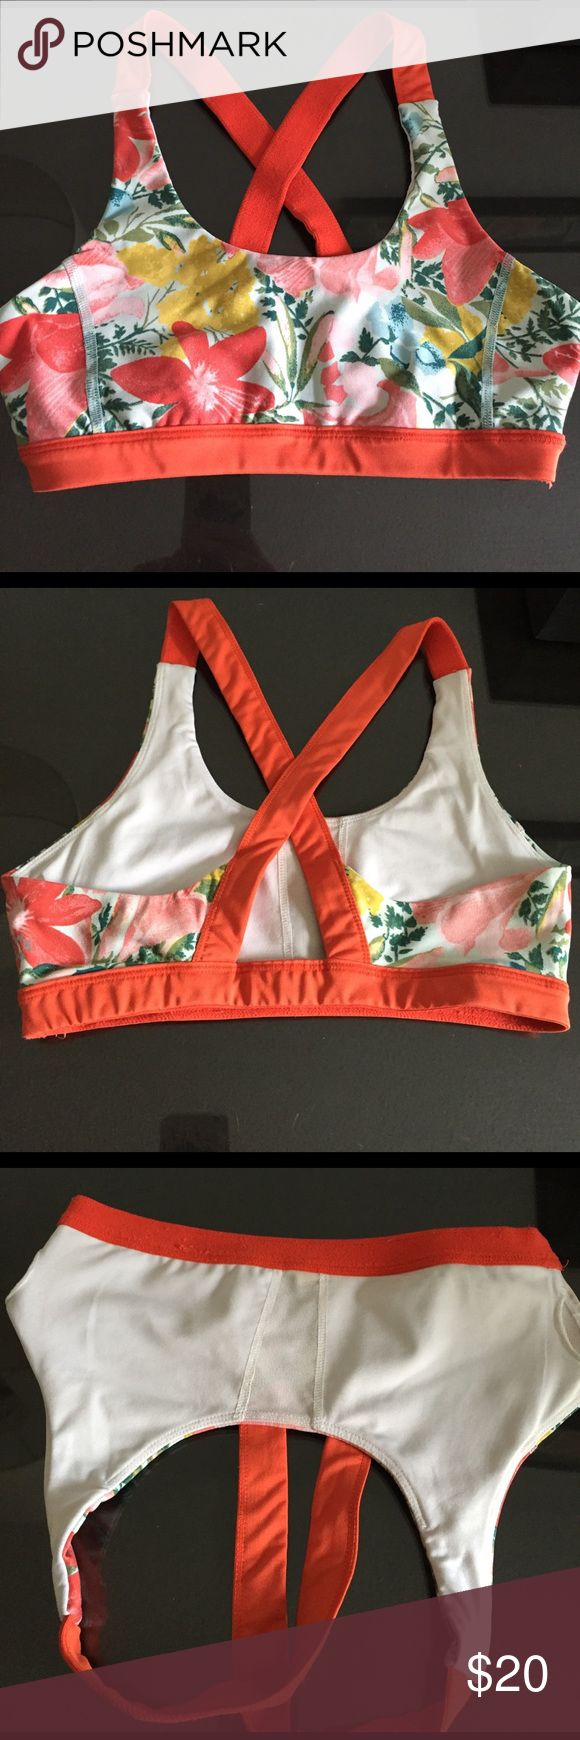 Urban Outfitters Without Walls floral sports bra Pretty sports bra from Urban Outfitters sportswear line Without Walls. Orange and flower print, no cups/push-up. Used but great condition. Without Walls Intimates & Sleepwear Bras